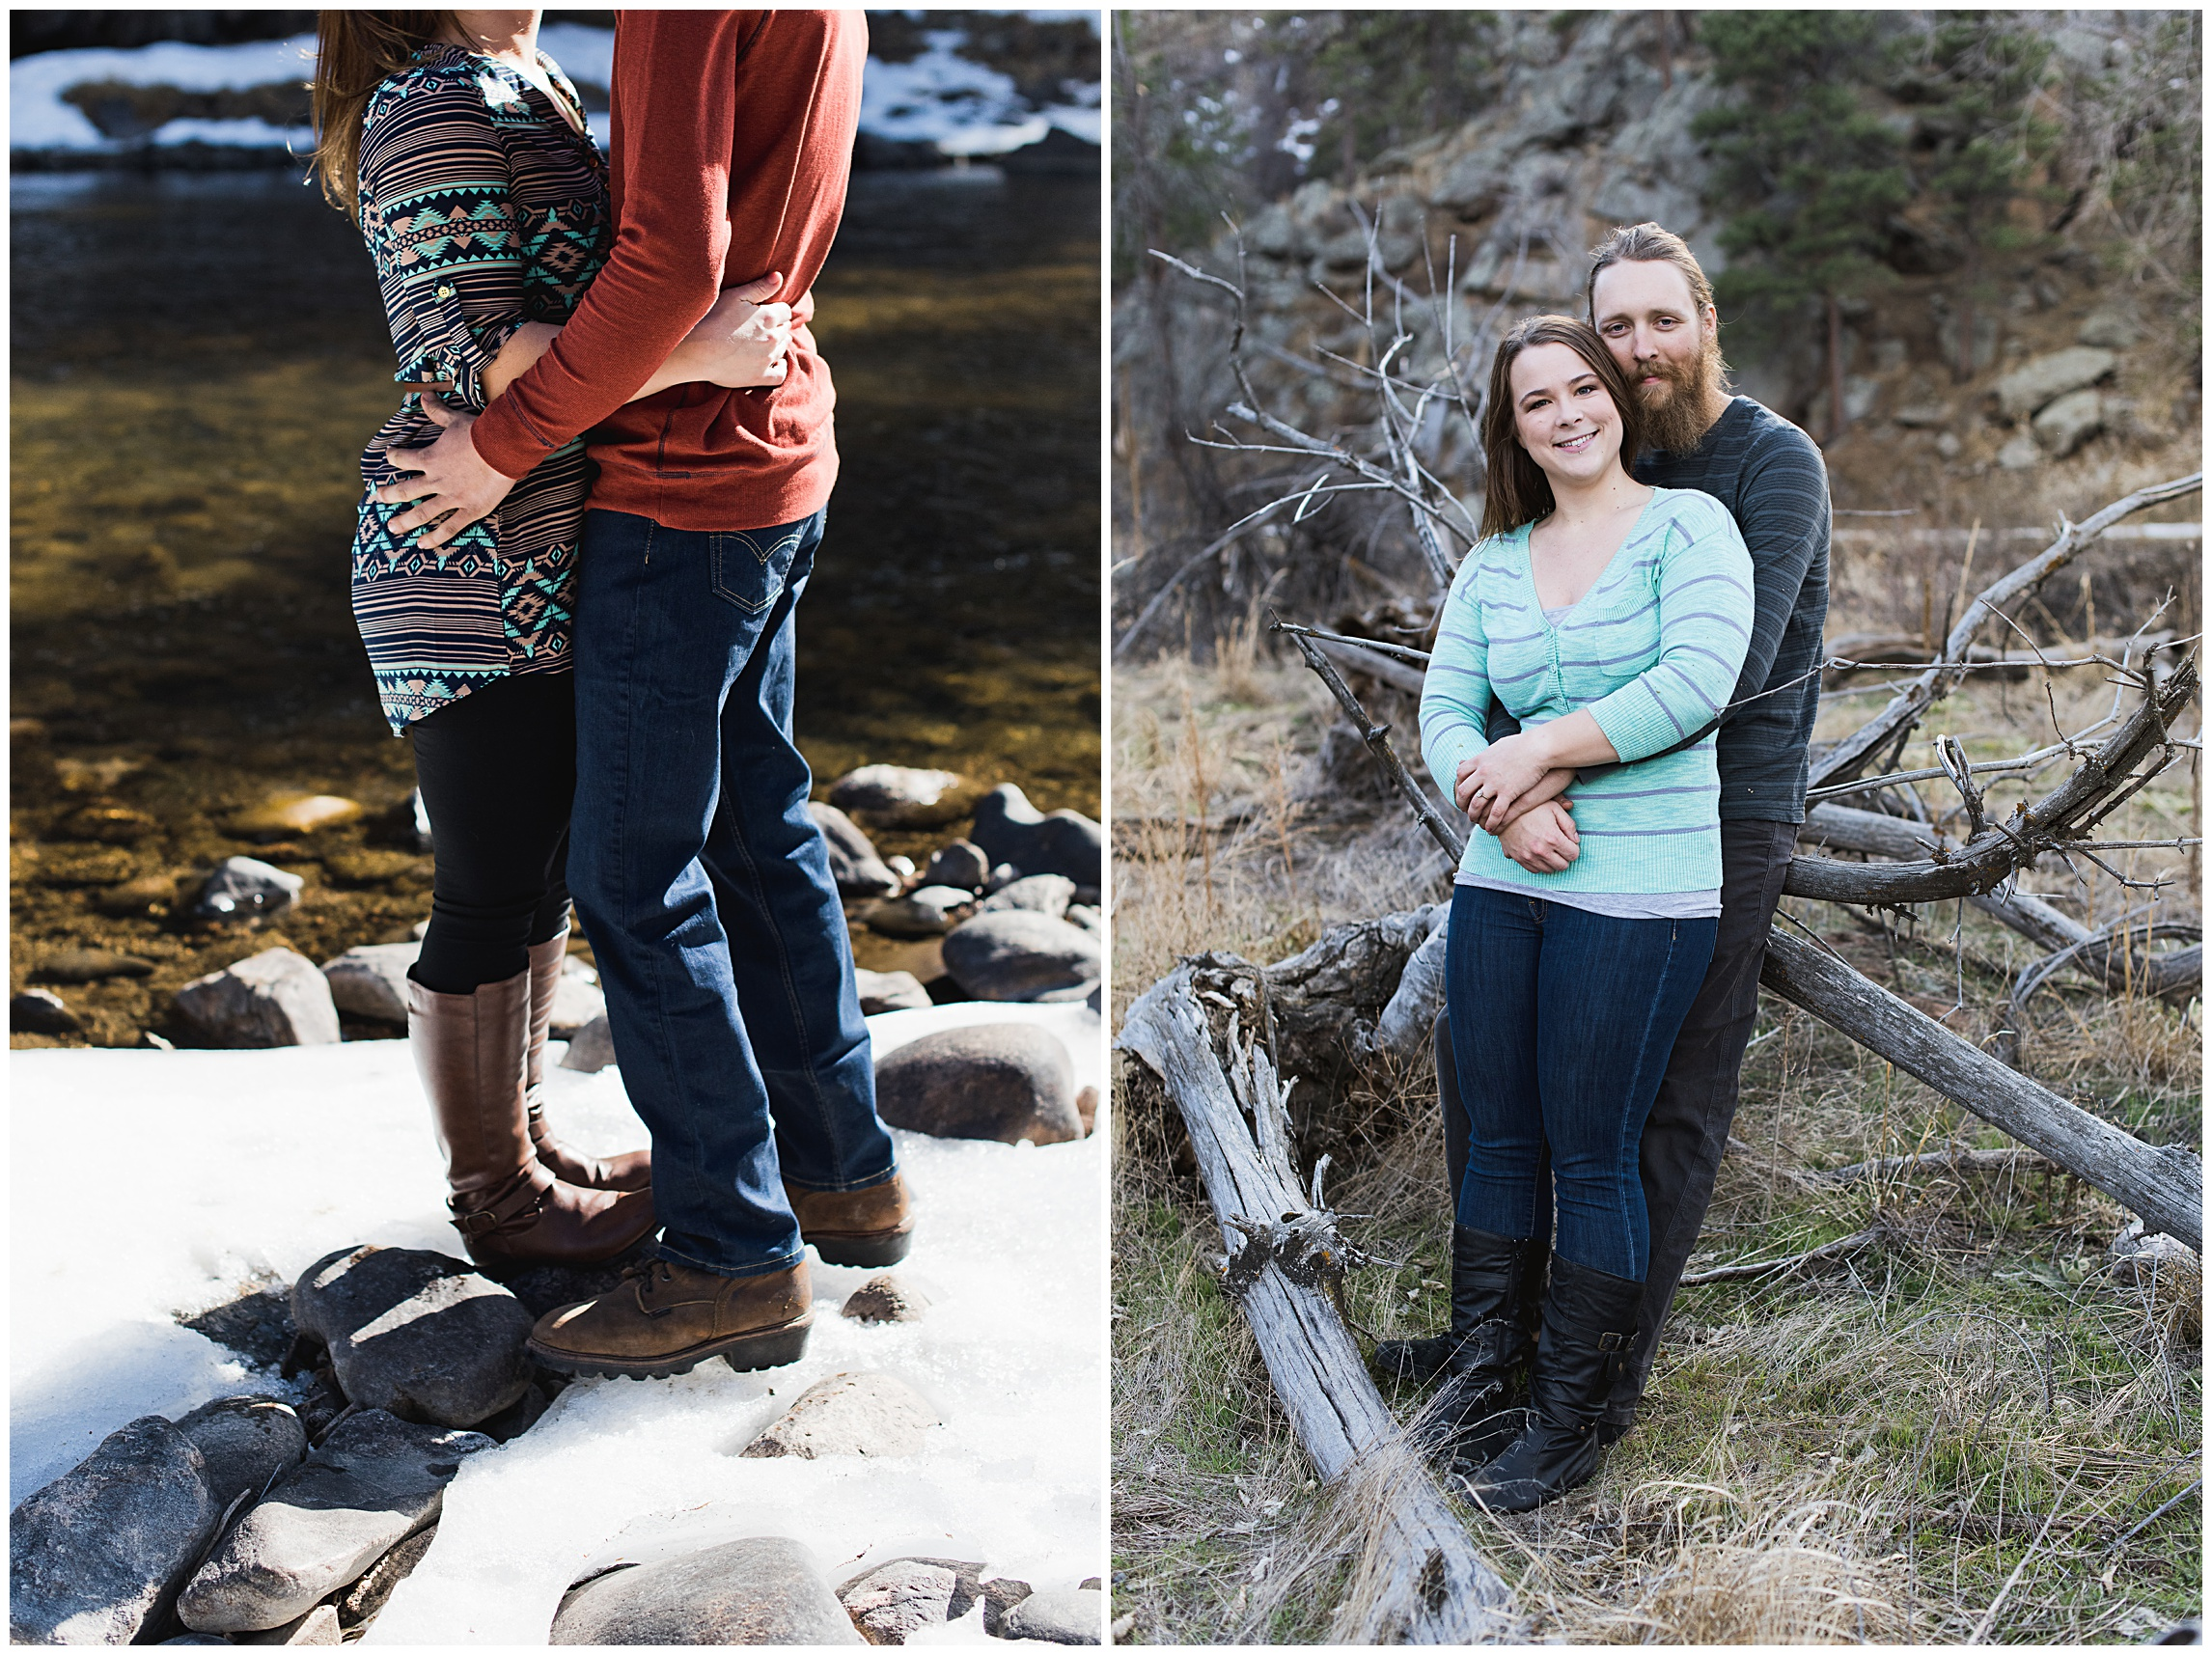 an adorable couple shot by Sonja K Photography on a snowy spring day in Gateway Park up the Poudre Canyon by the Poudre River for an engagement session